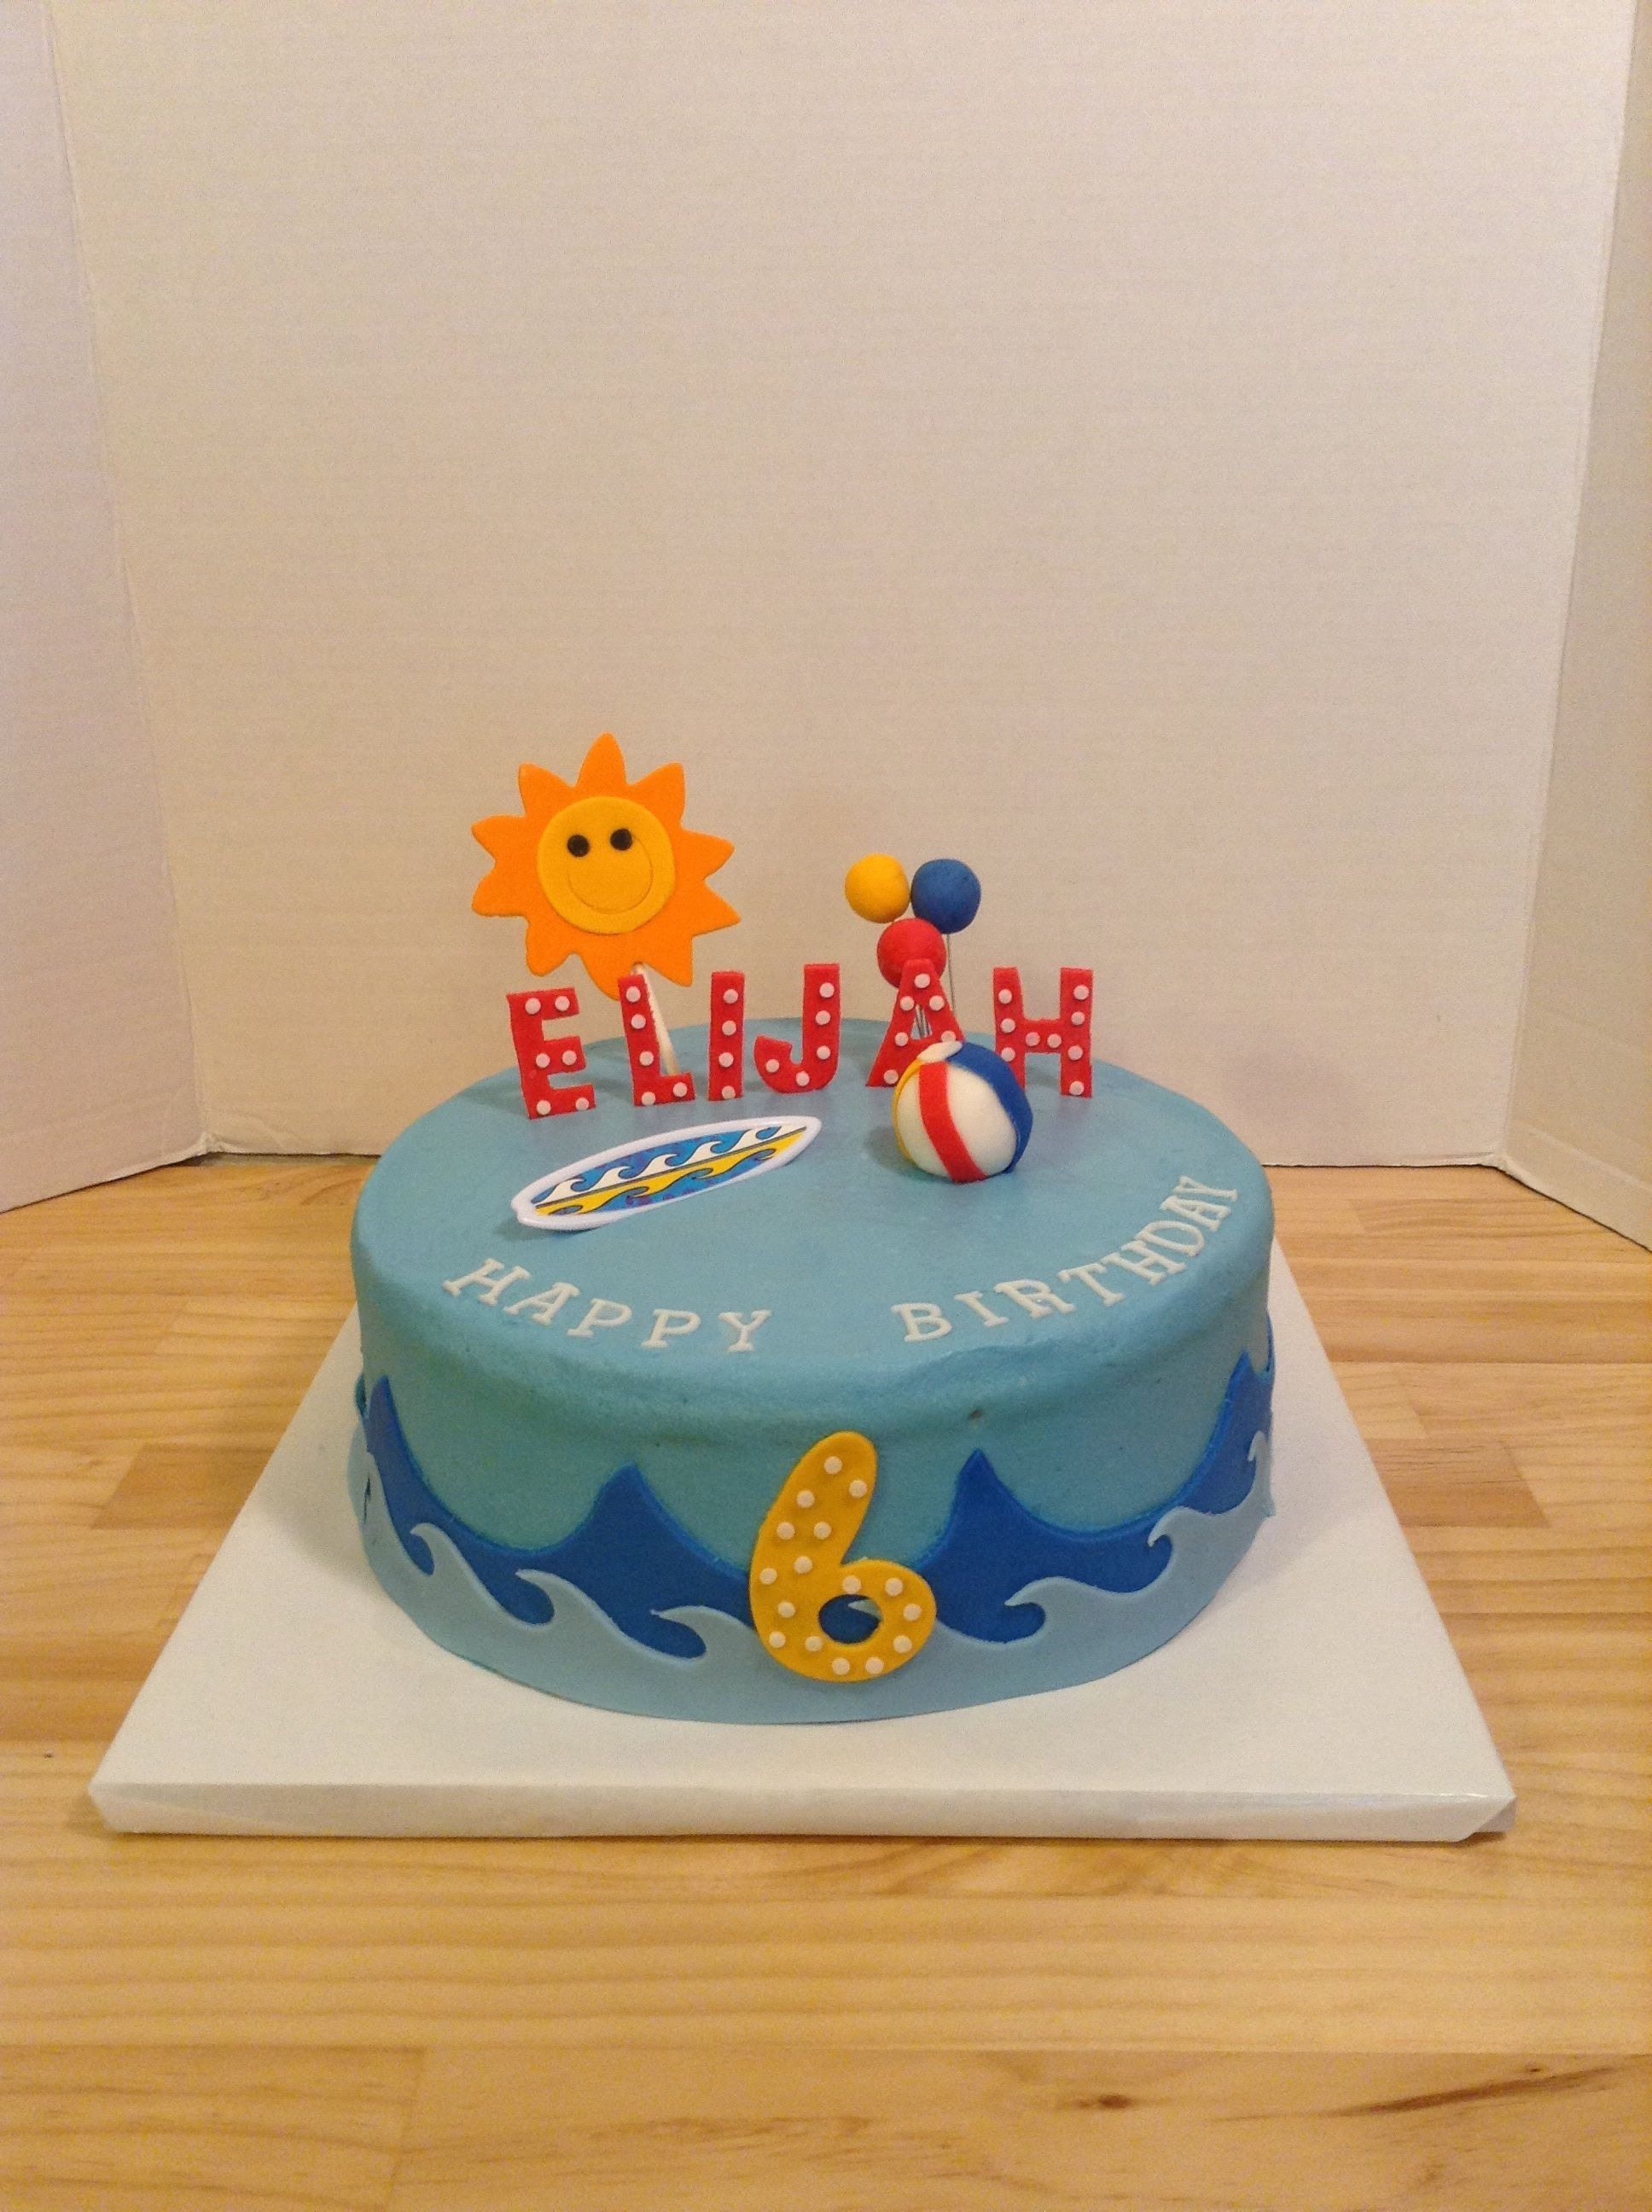 Marvelous Beach Themed Birthday Cake Cakecentral Com Funny Birthday Cards Online Unhofree Goldxyz